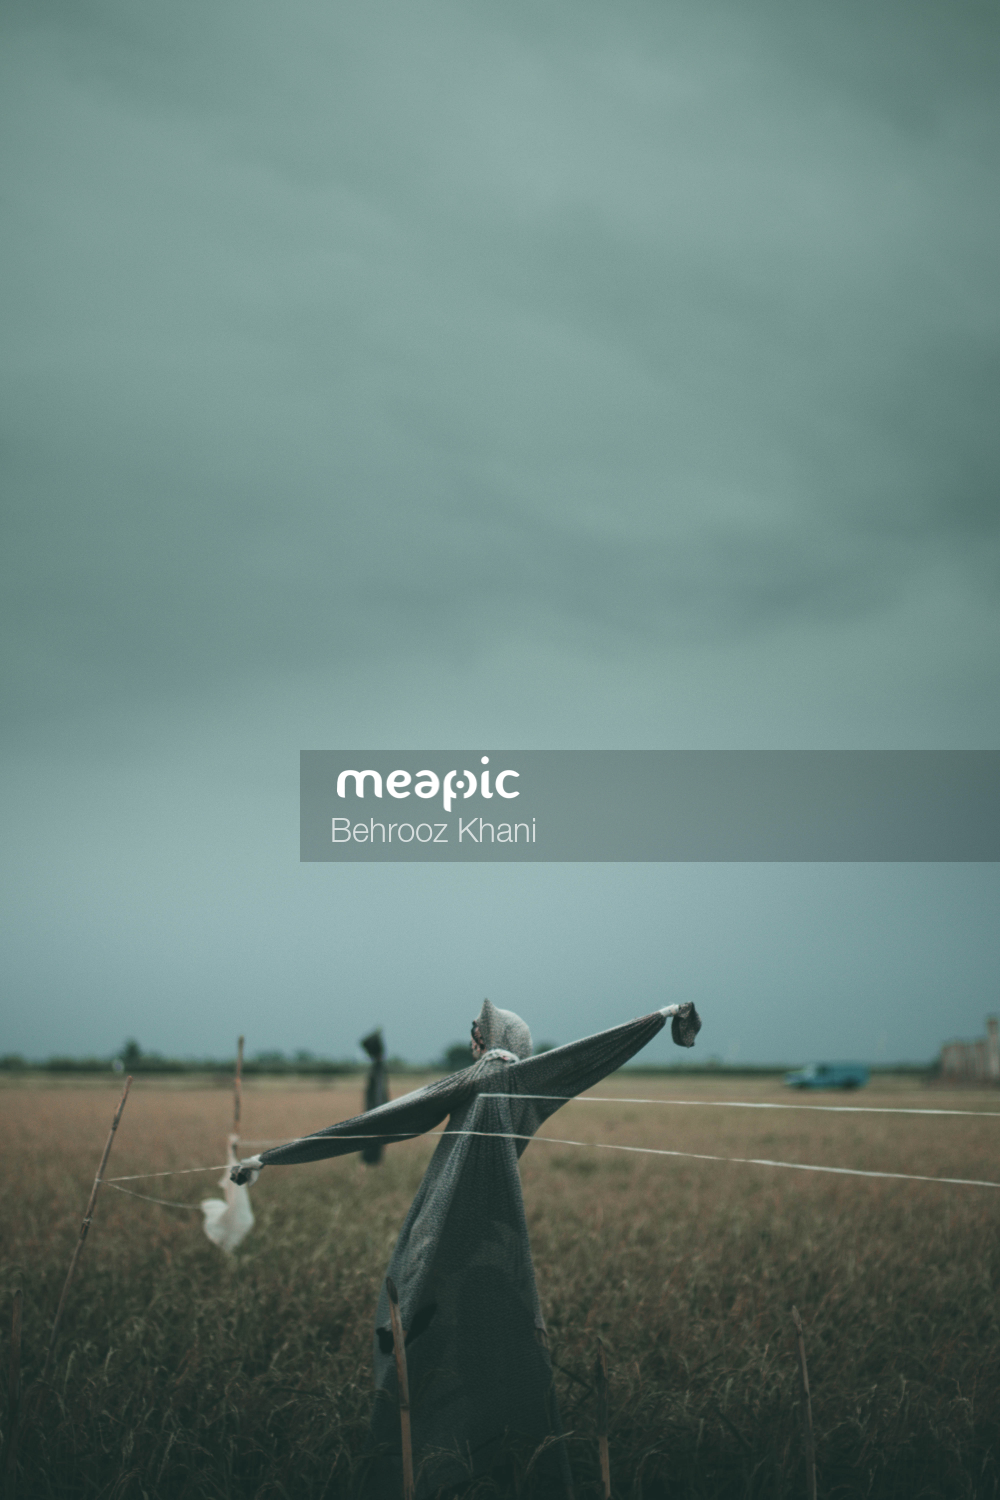 Large Air Plane On A Cloudy Day Stock Photo · Meapic